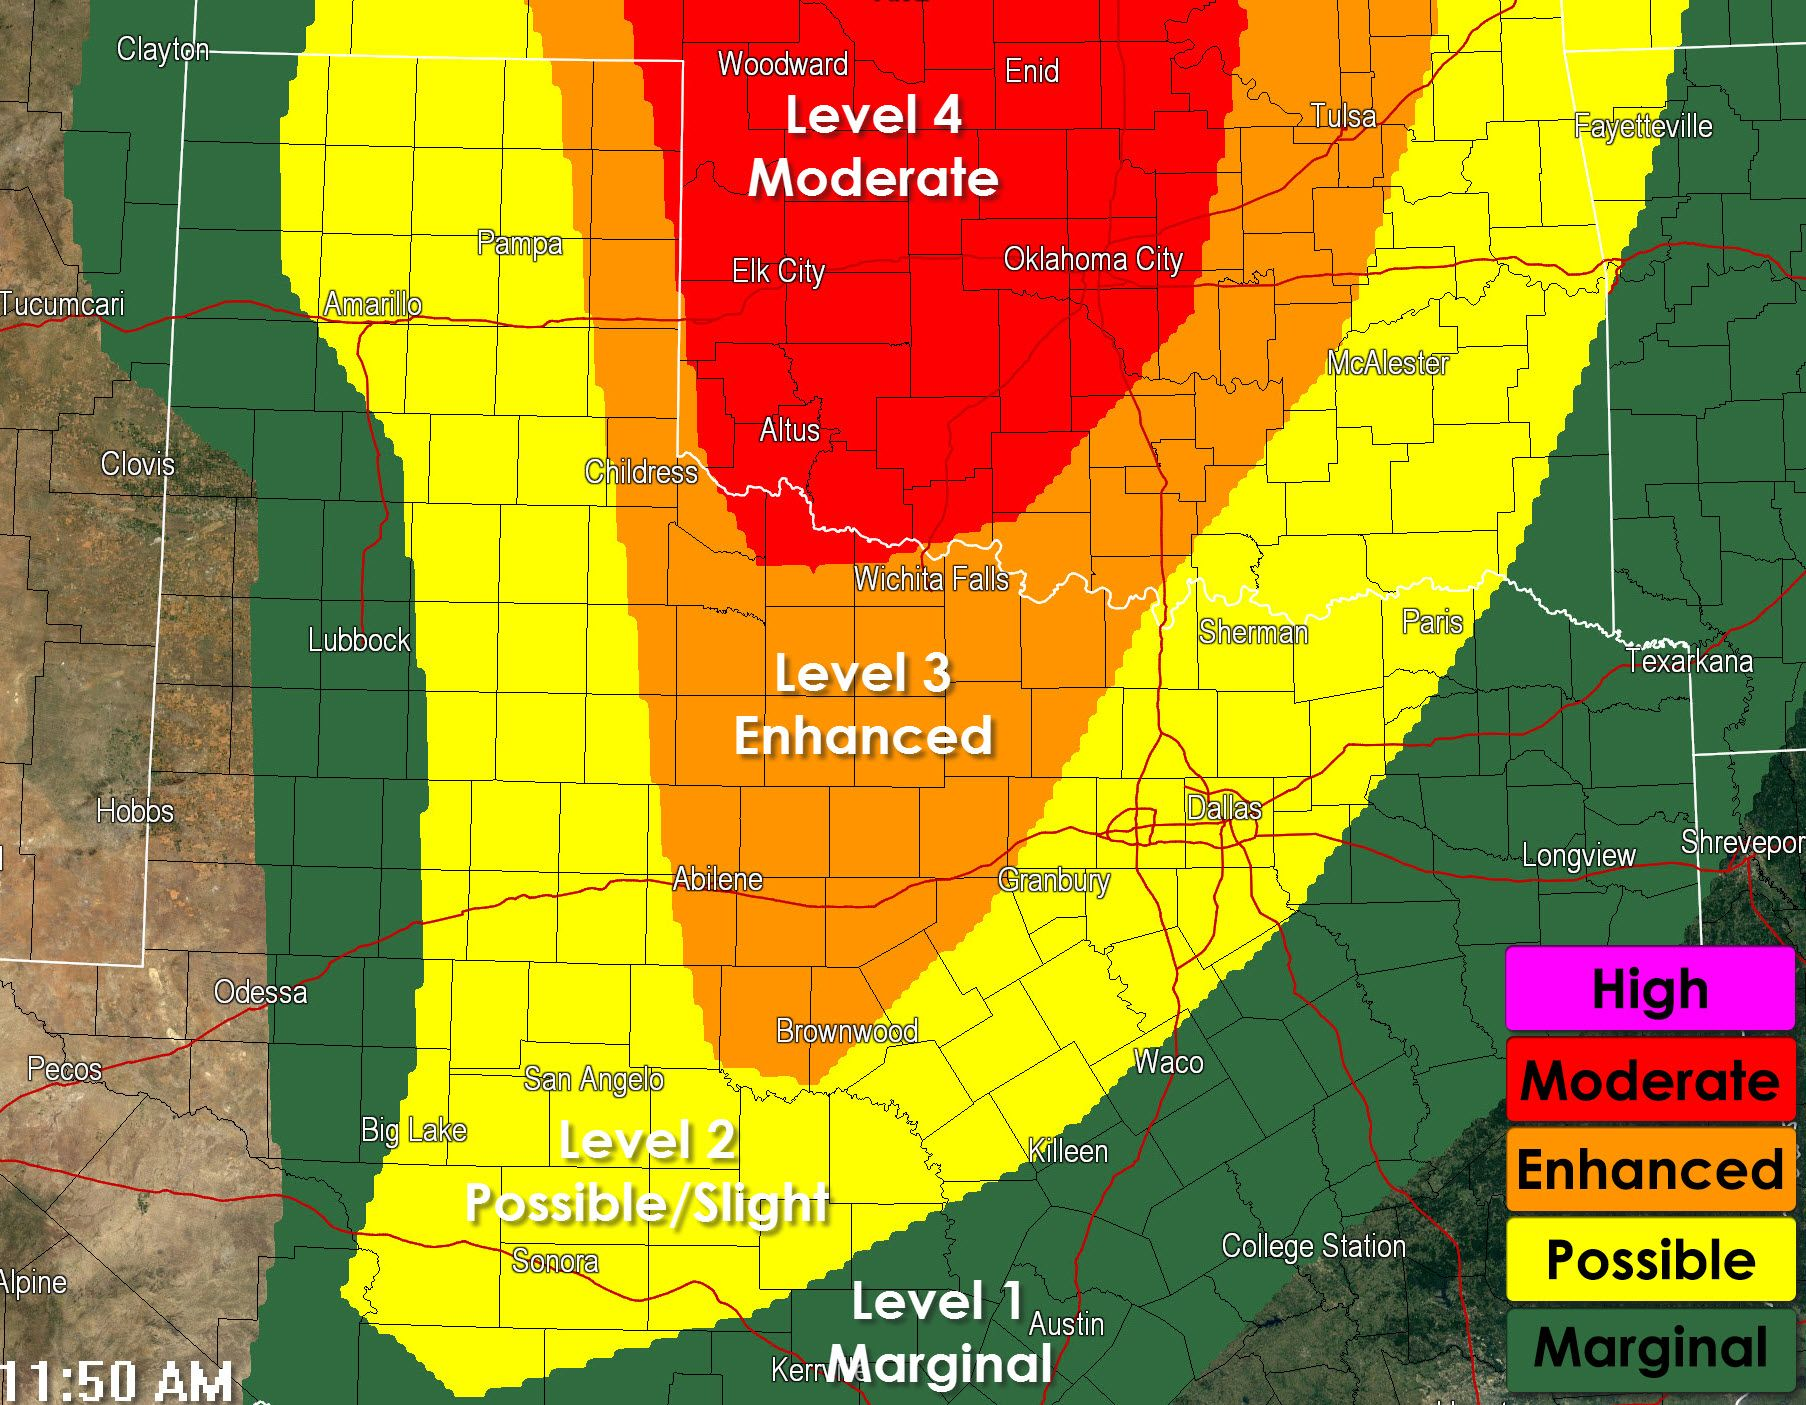 12 Pm Severe Weather Update With Images Texas Storm Severe Weather Wind Gust